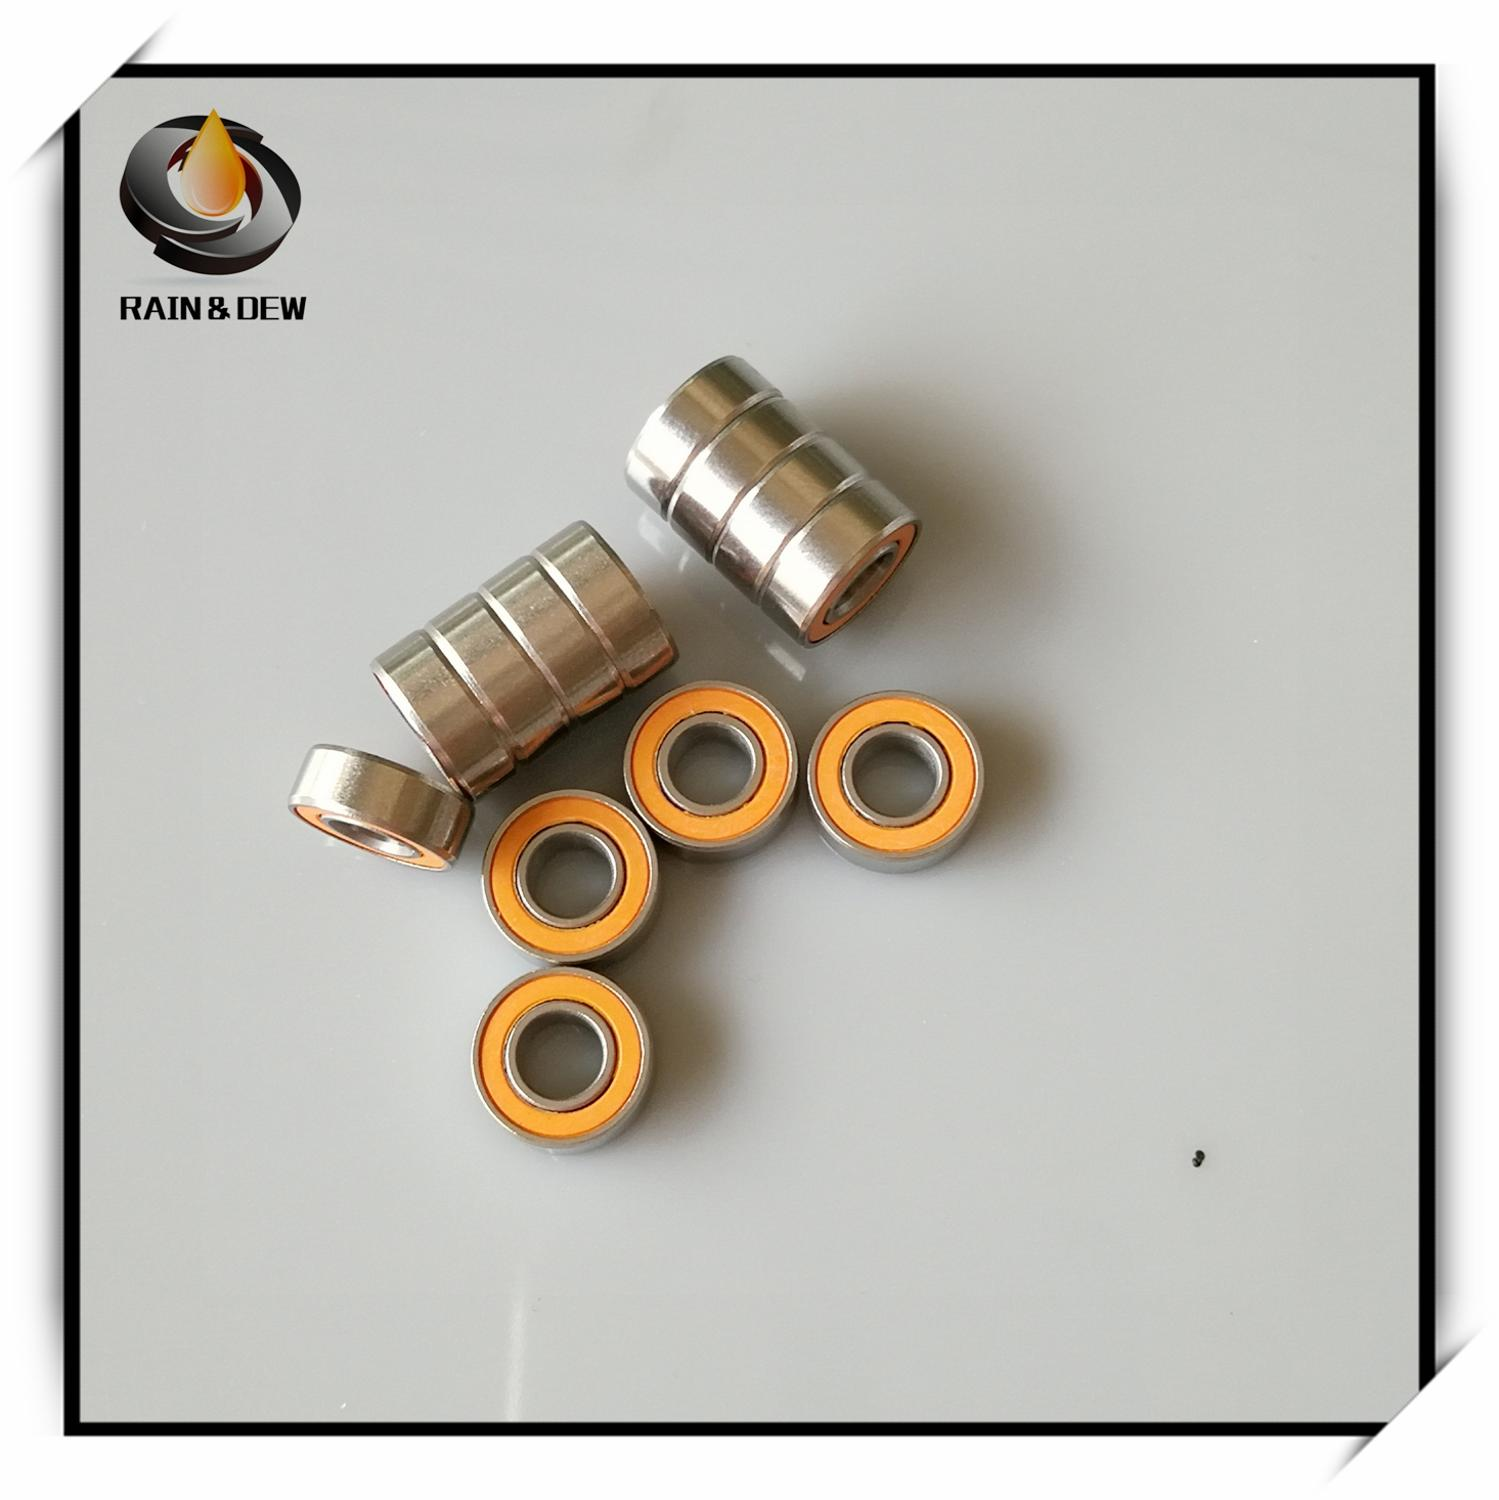 1Pcs 5X11X4mm SMR115 2OS CB ABEC7 LD 5x11x4 SMR115 2RS Stainless steel hybrid ceramic ball bearing